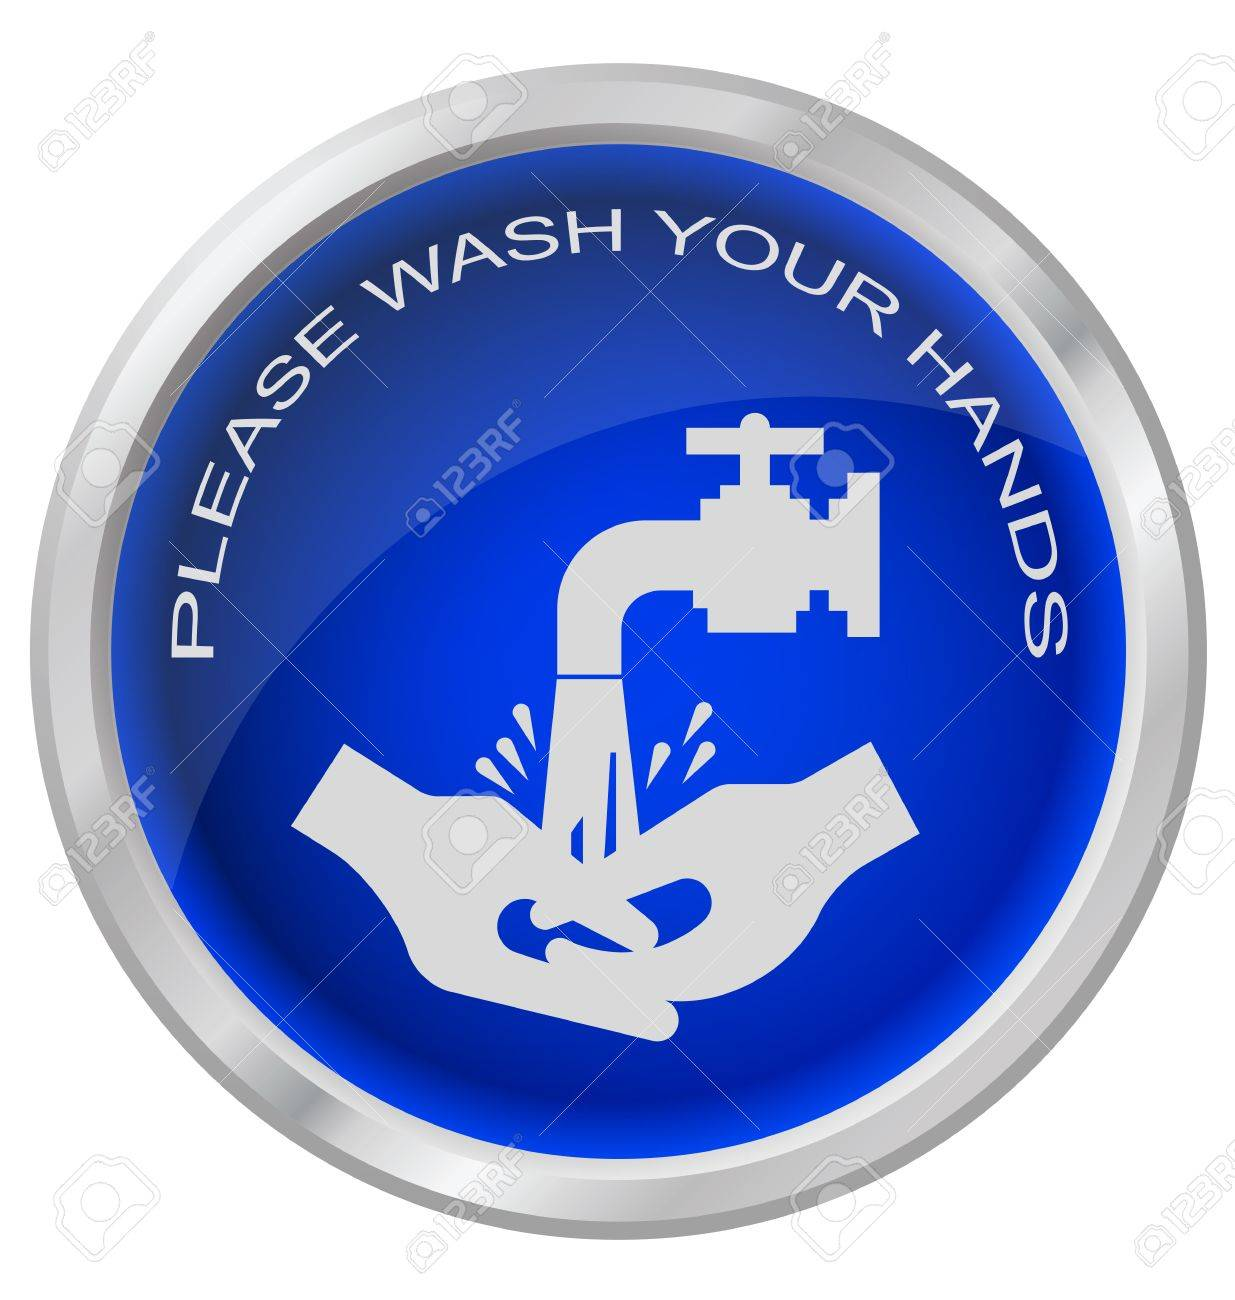 Wash hands button isolated on white background Stock Vector - 17872526